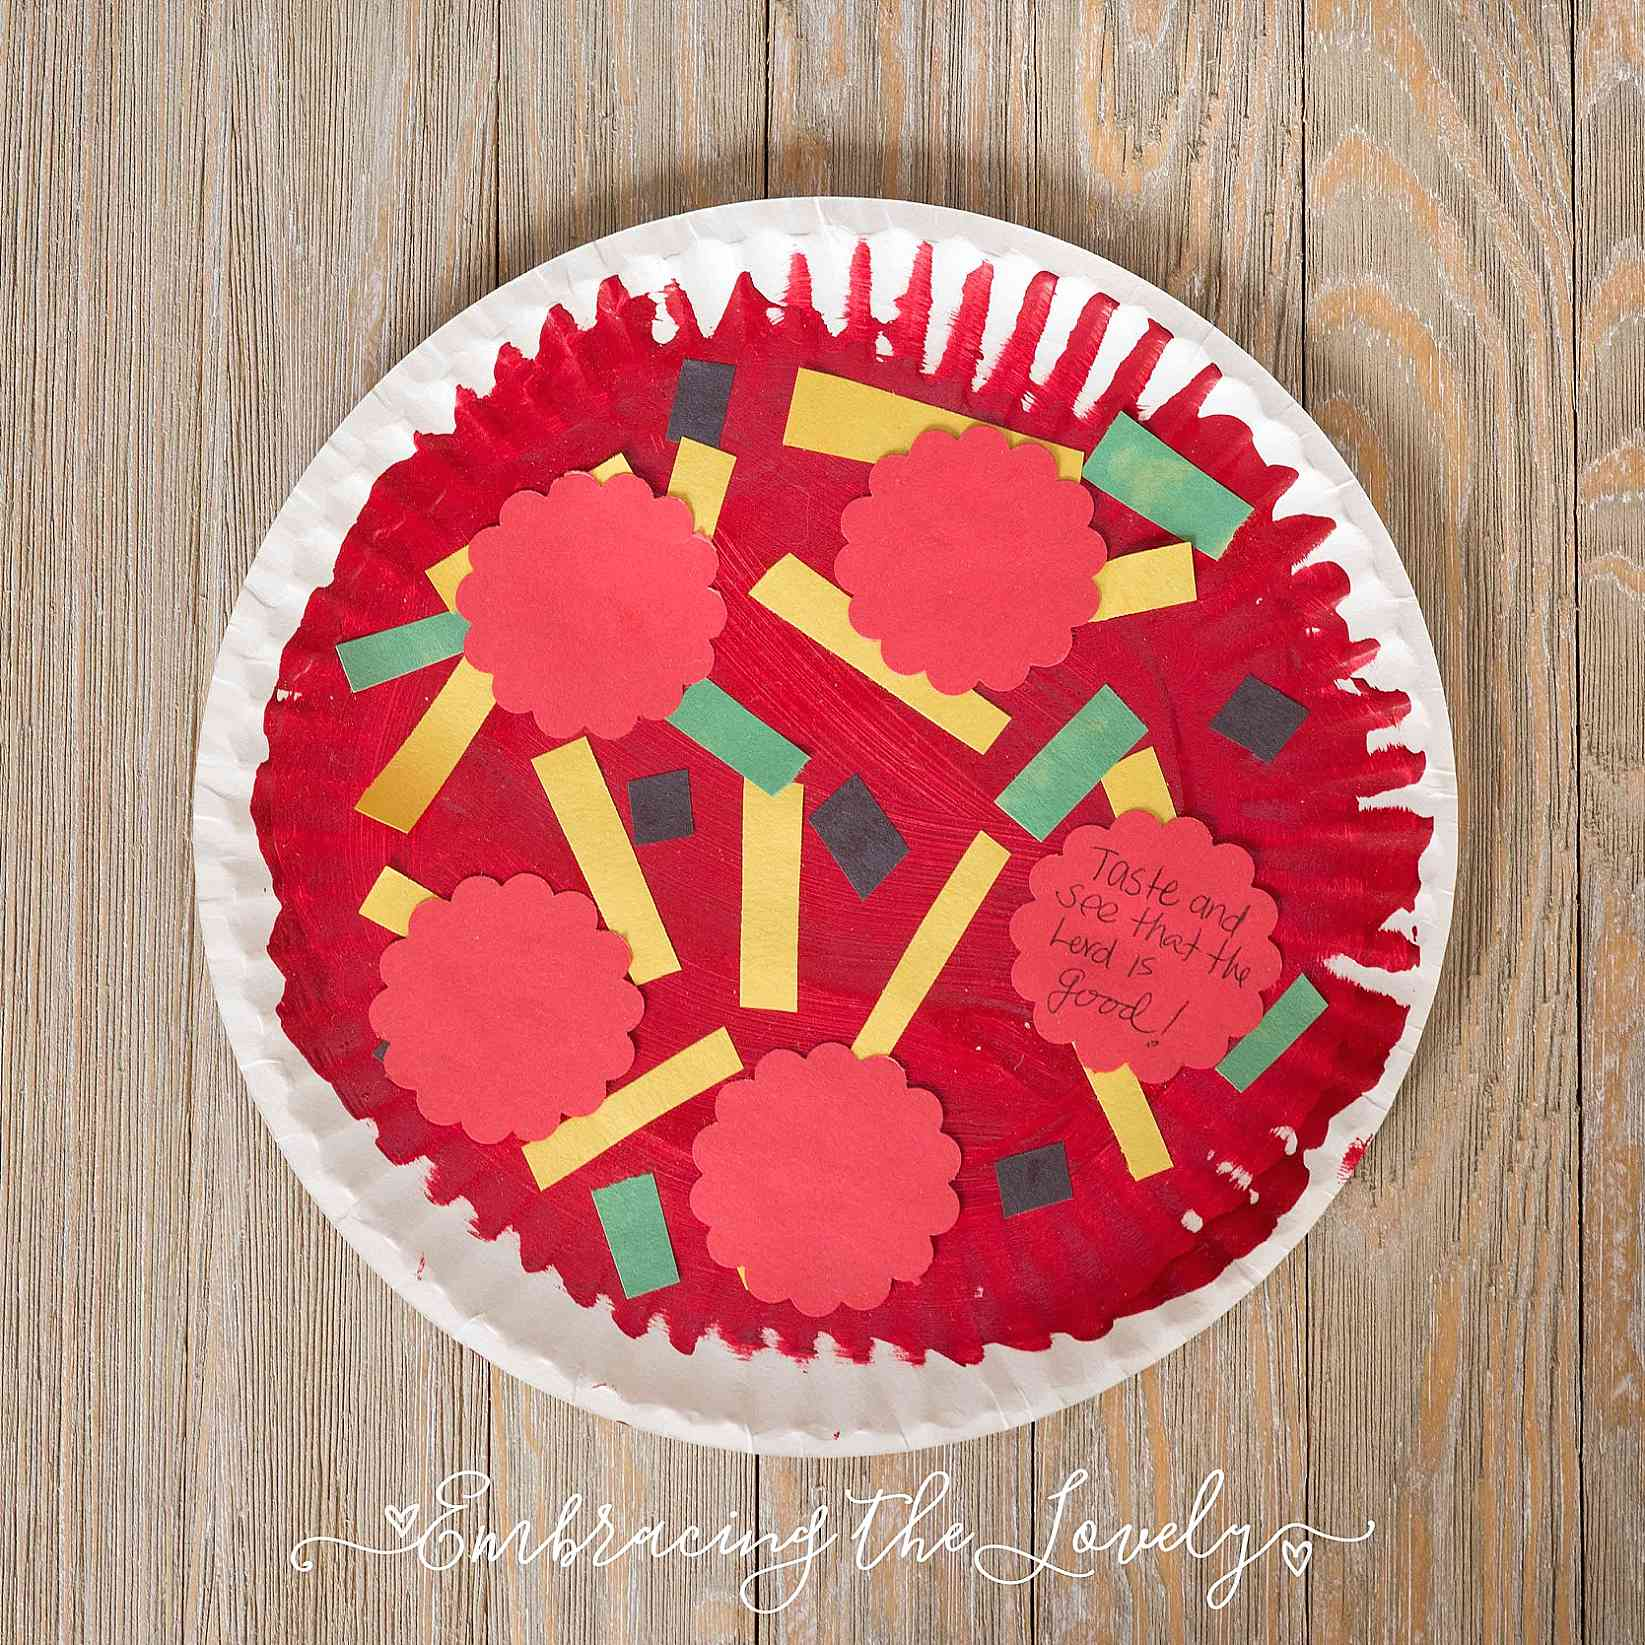 Paper Plate Crafts for Kids & Easy Paper Plate Crafts for Kids +Faith Lessons with Embracing the ...